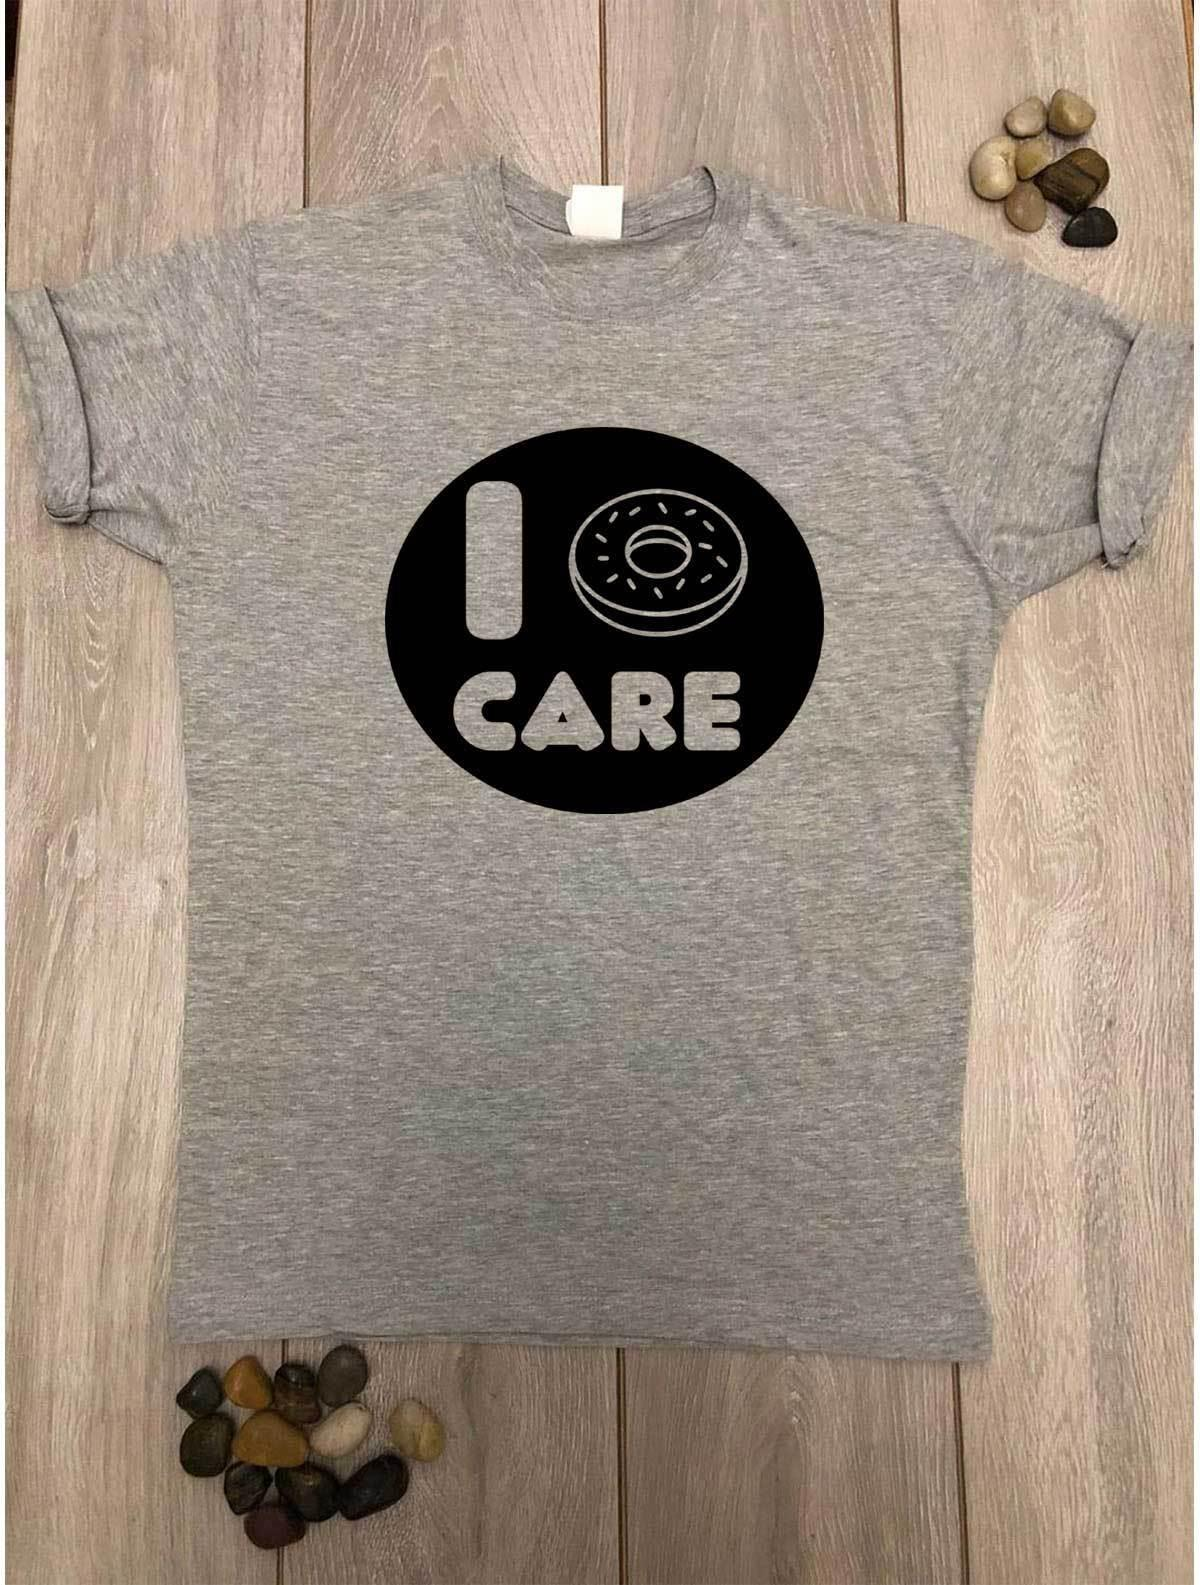 d08d81c27 I Donut Care T Shirt Tumblr Fashion Cute Slogan Funny I Don'T Care Tee Idea  GiftFunny Unisex Casual Tshirt Top T Shirts For Sale Printed T Shirt From  ...